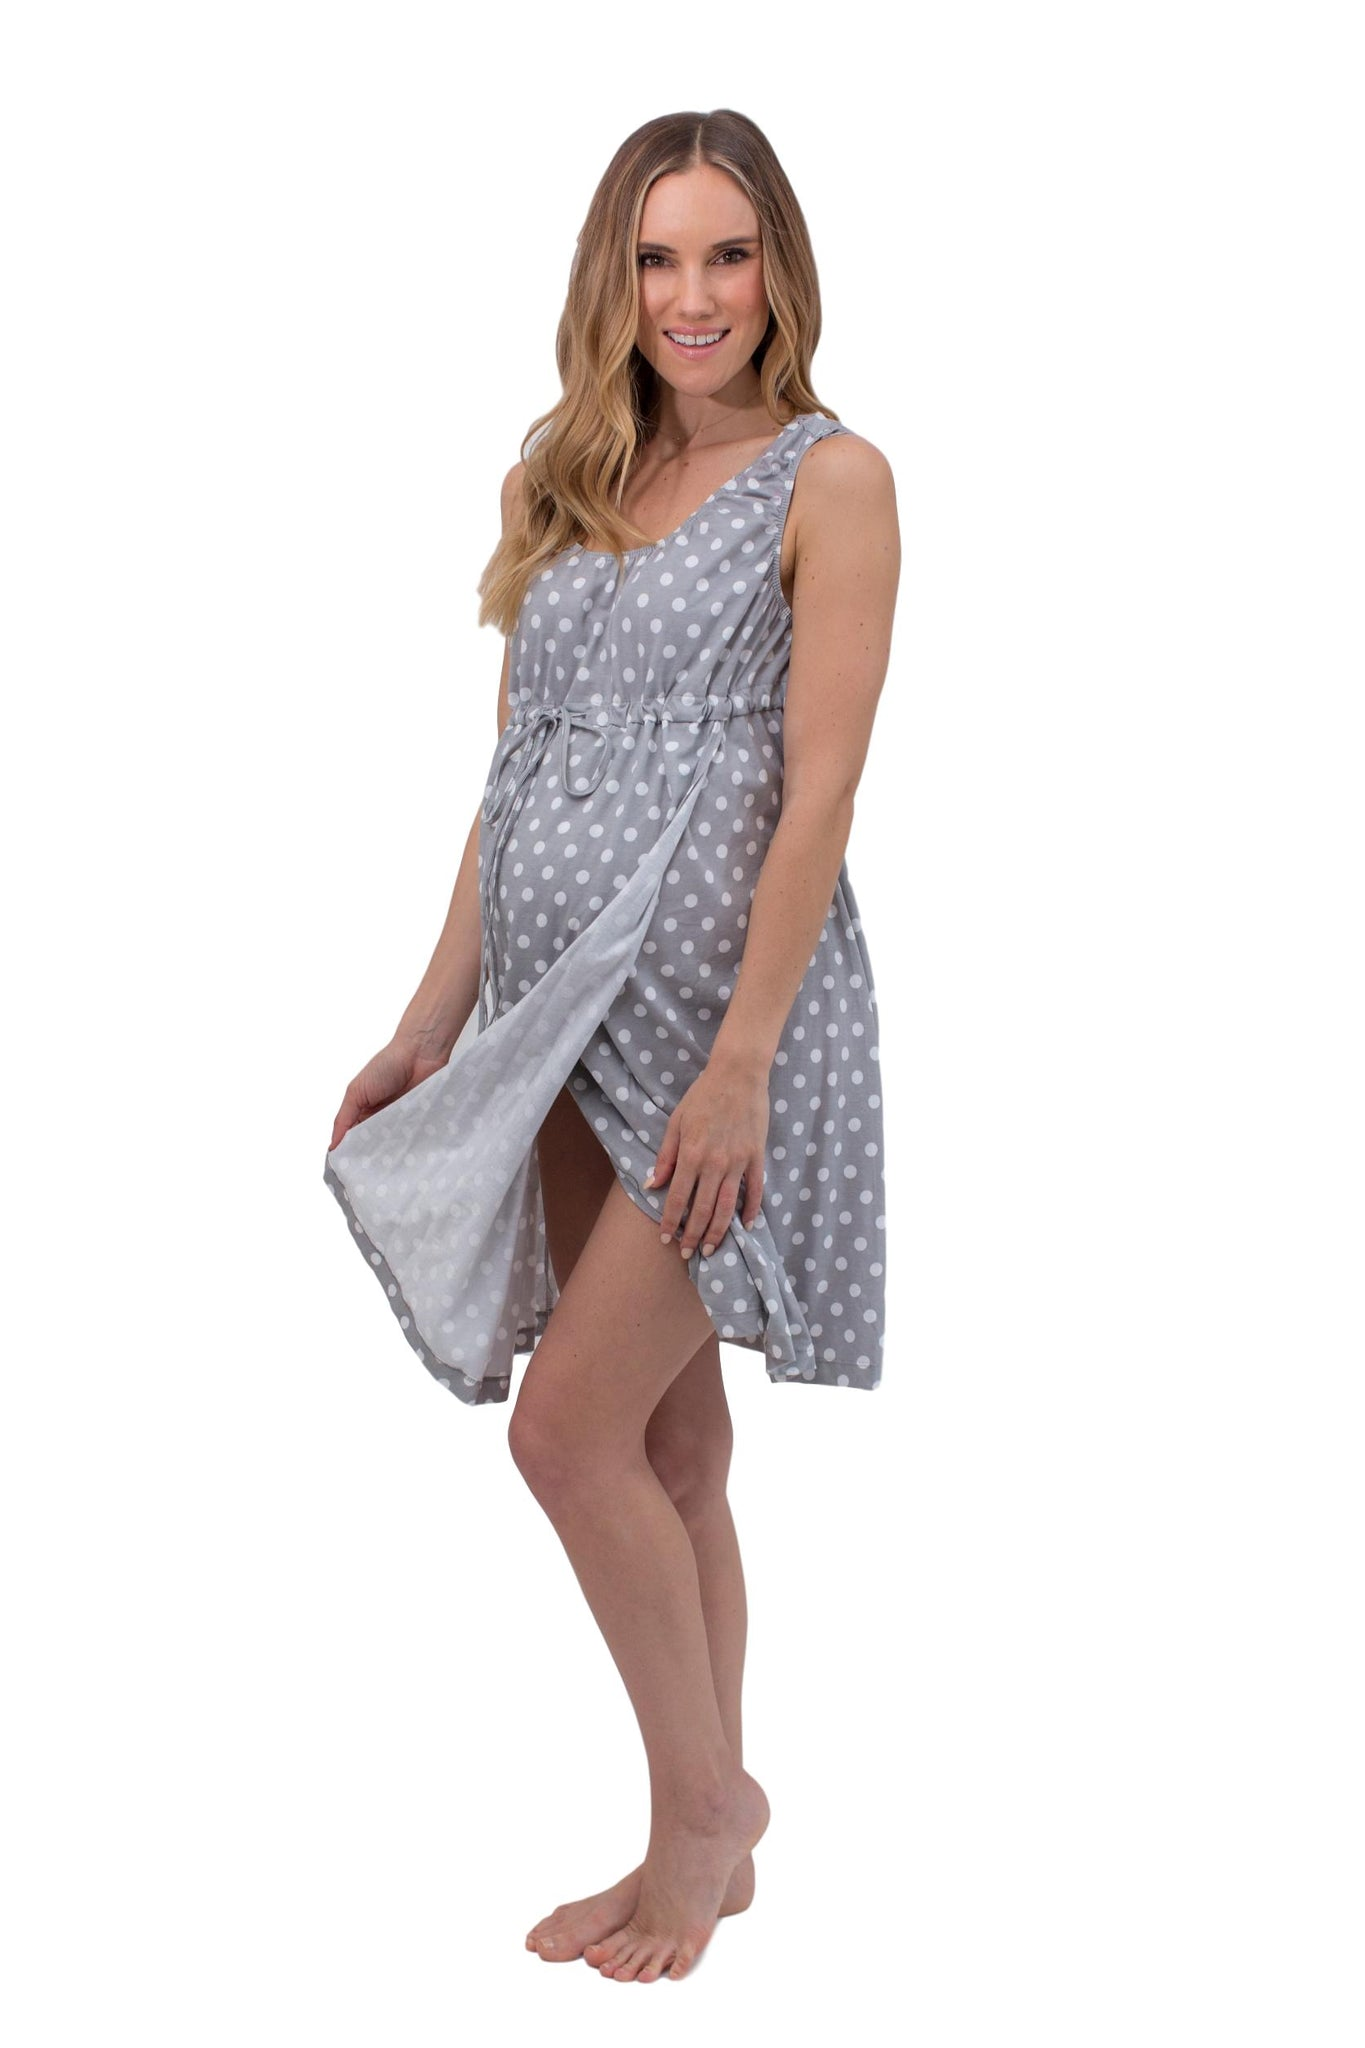 Lisa 3 in 1 Labor Gown & Baby Gown Set